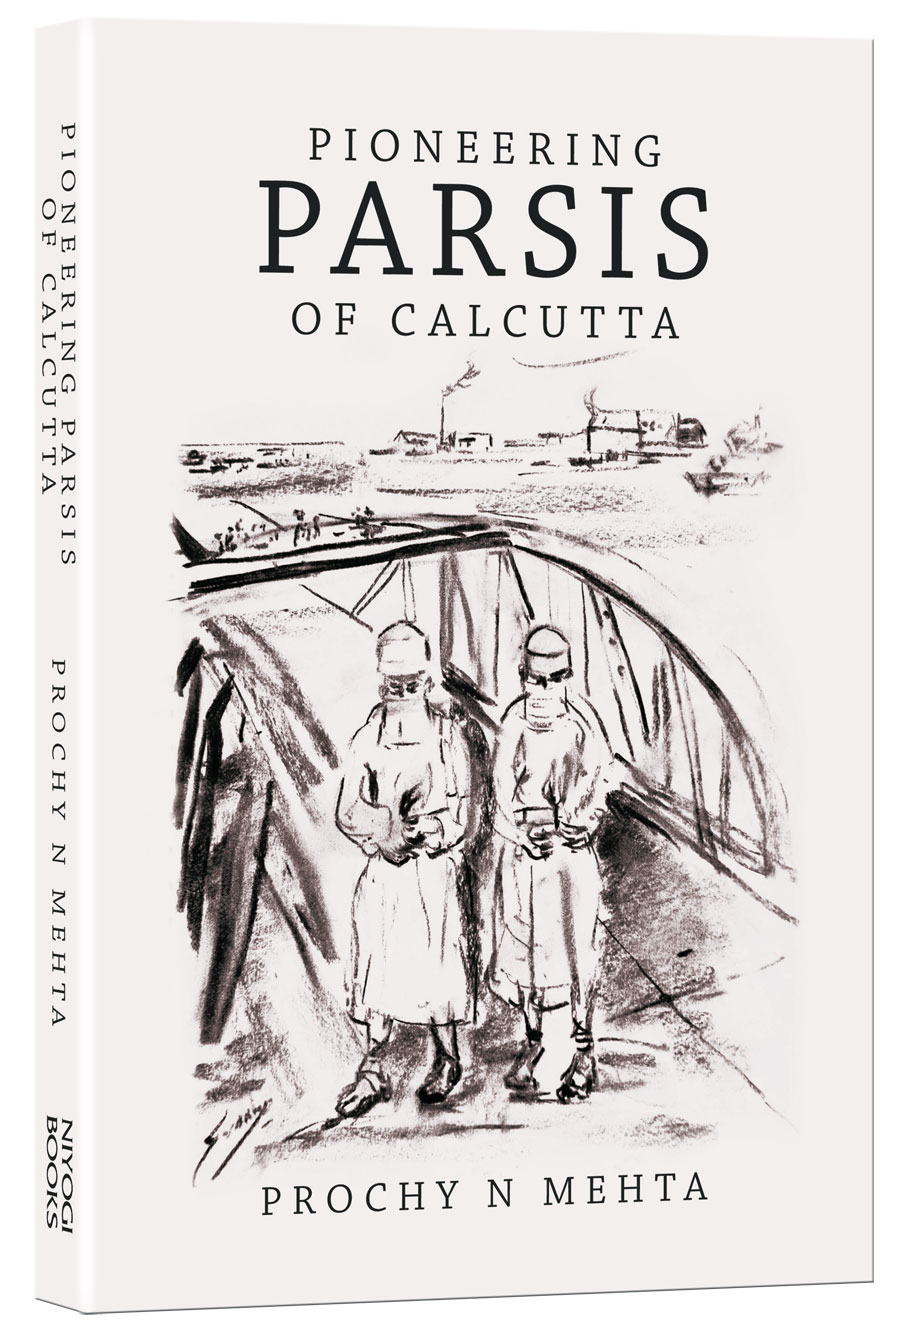 Pioneering Parsis of Calcutta, by Prochy N Mehta